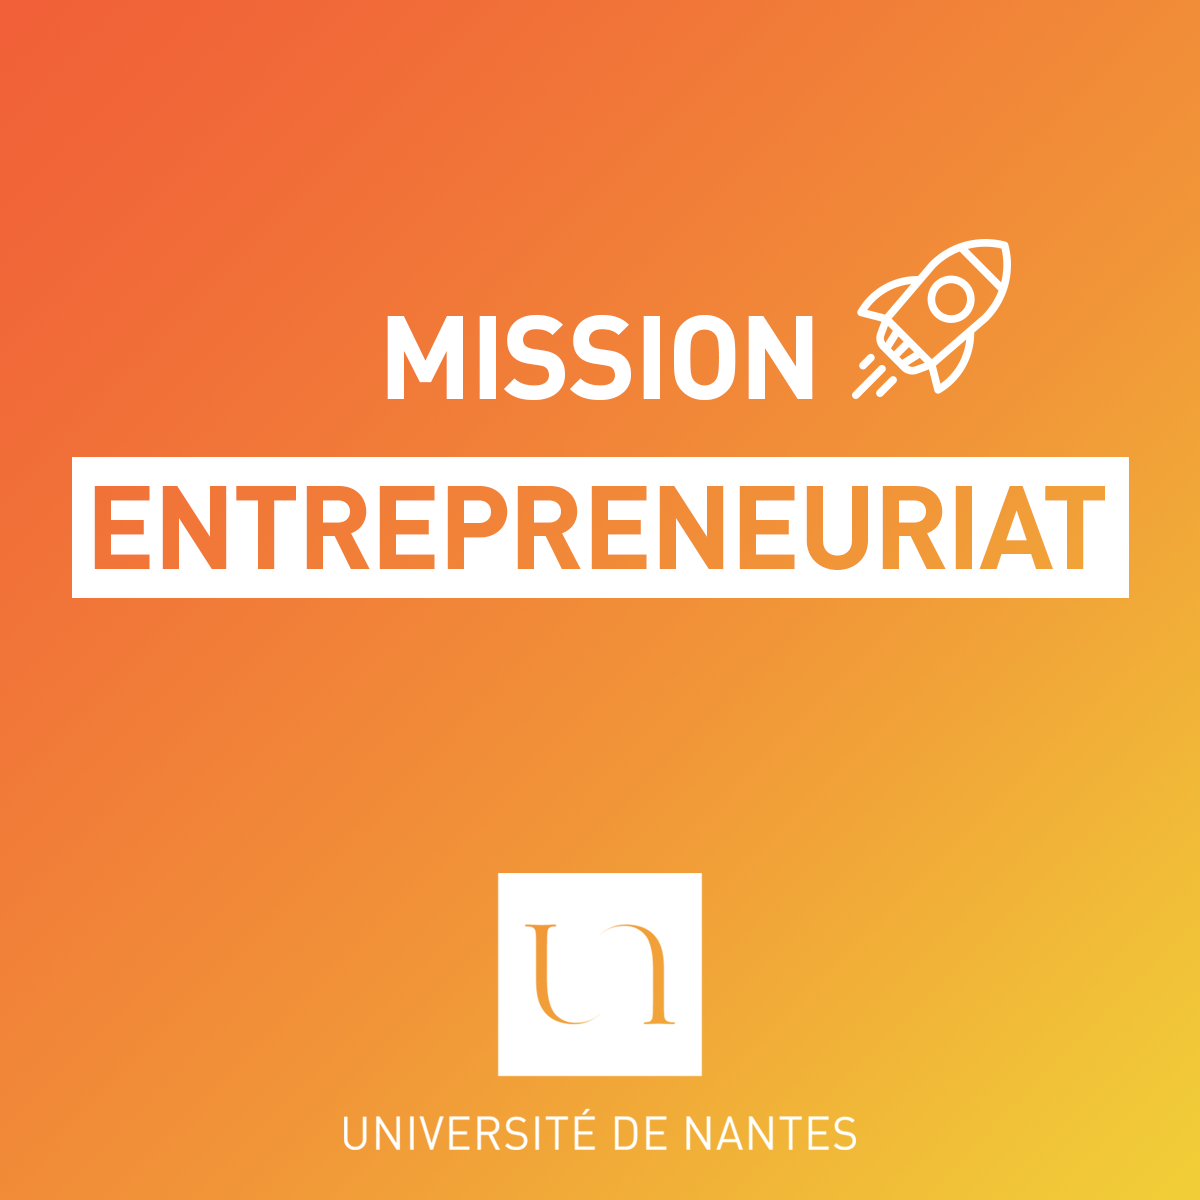 Mission Entrepreneuriat - Université de Nantes